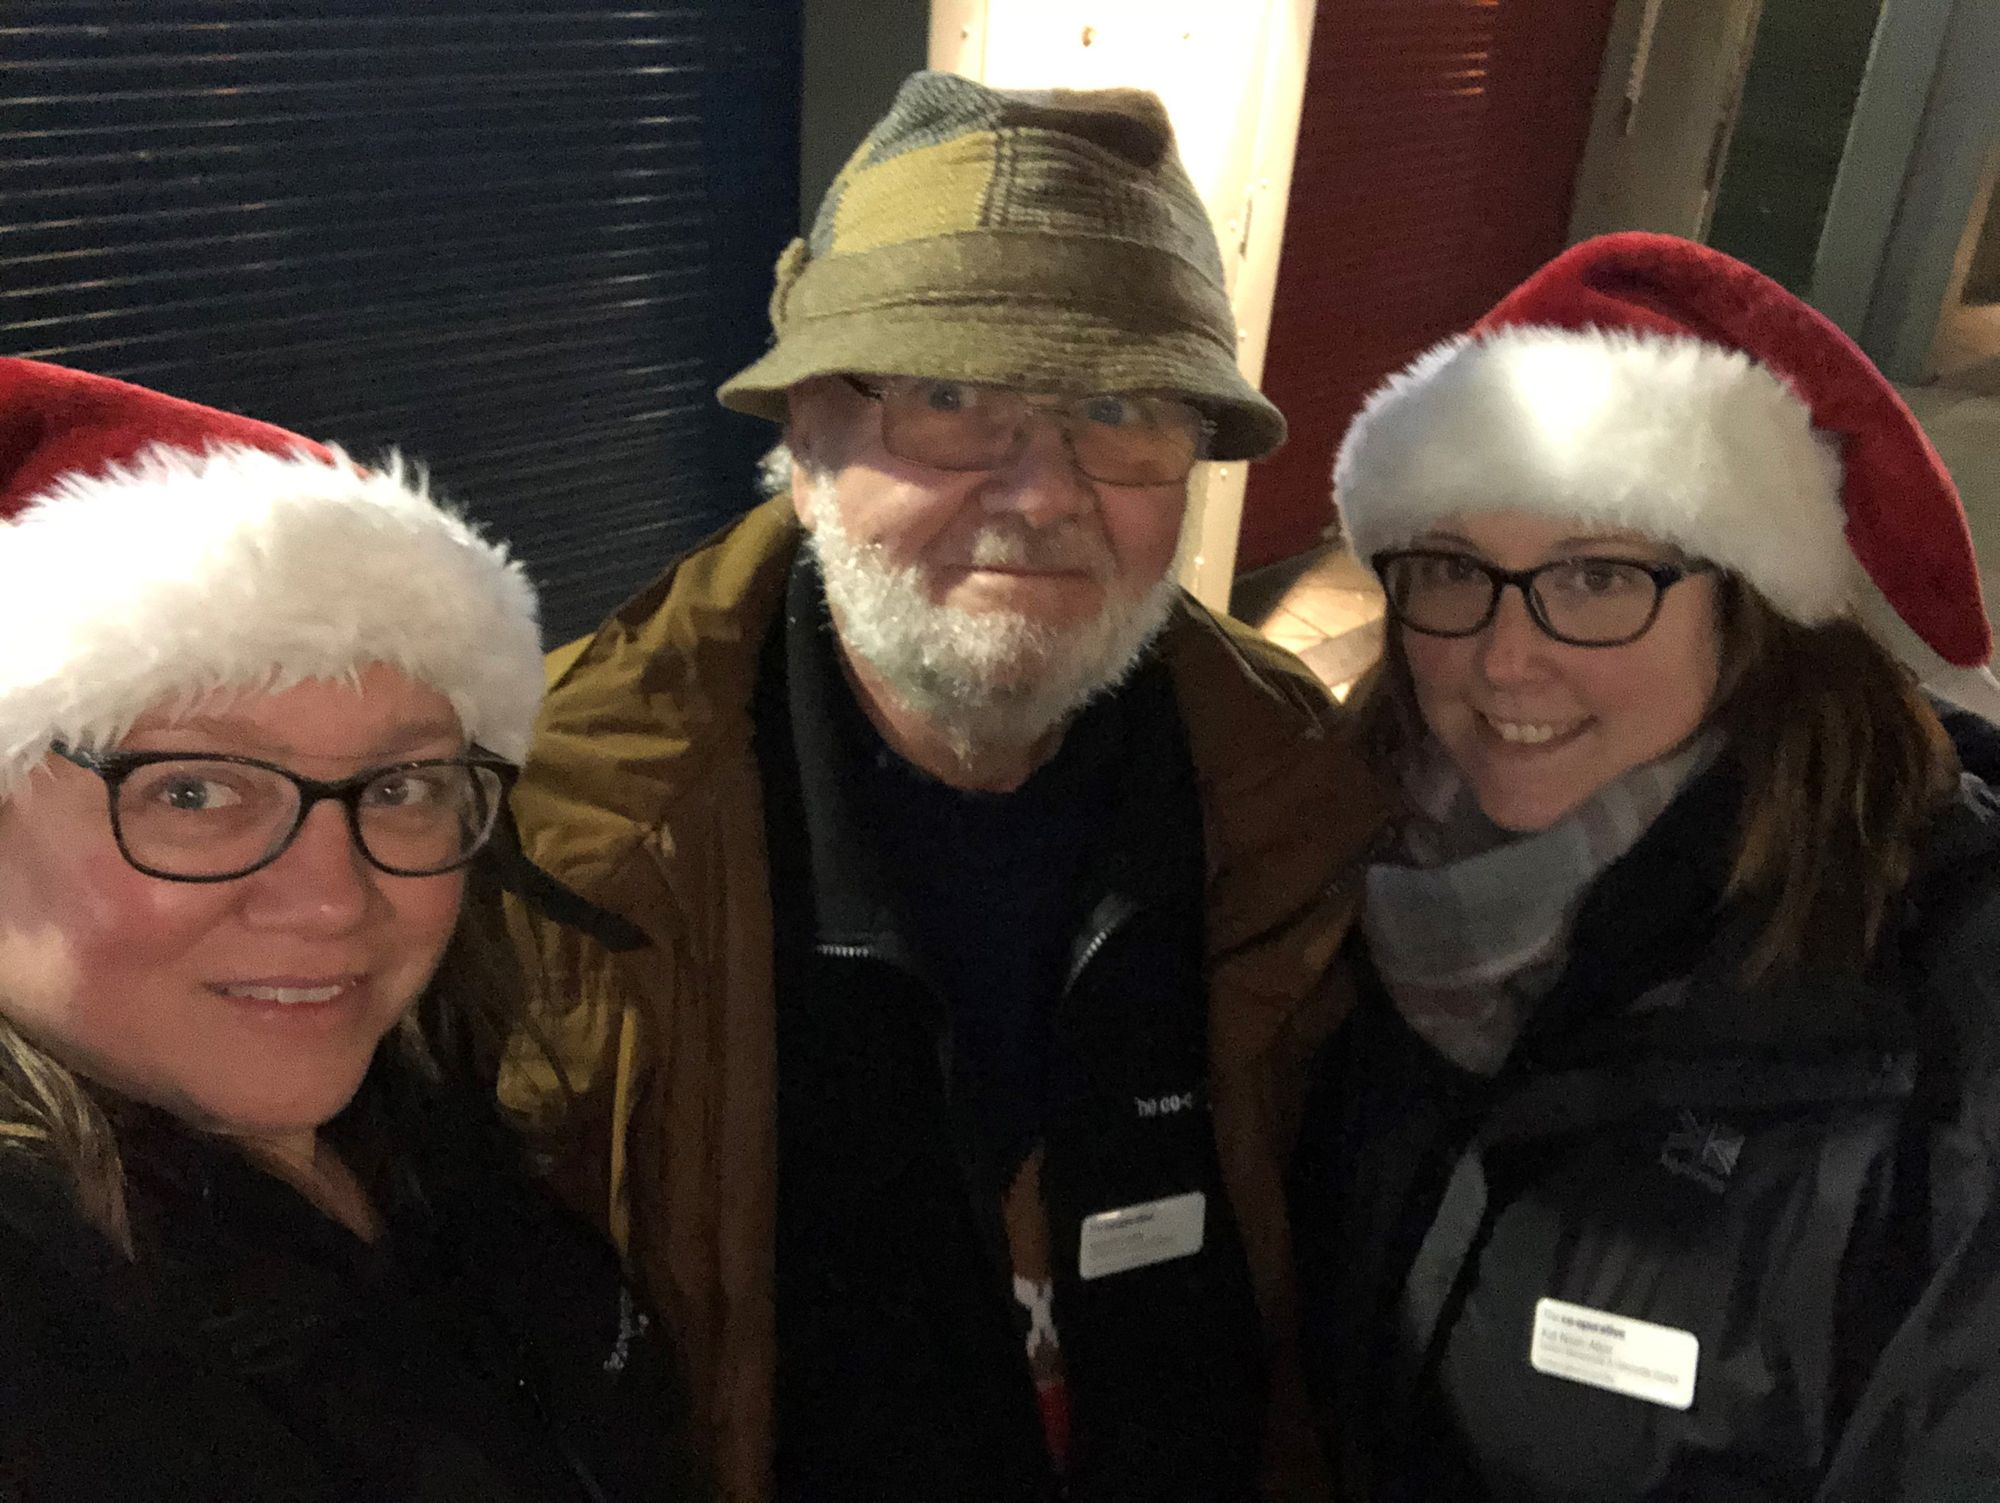 Central England Co-op helps fund Christmas dinner for homeless people in Norwich